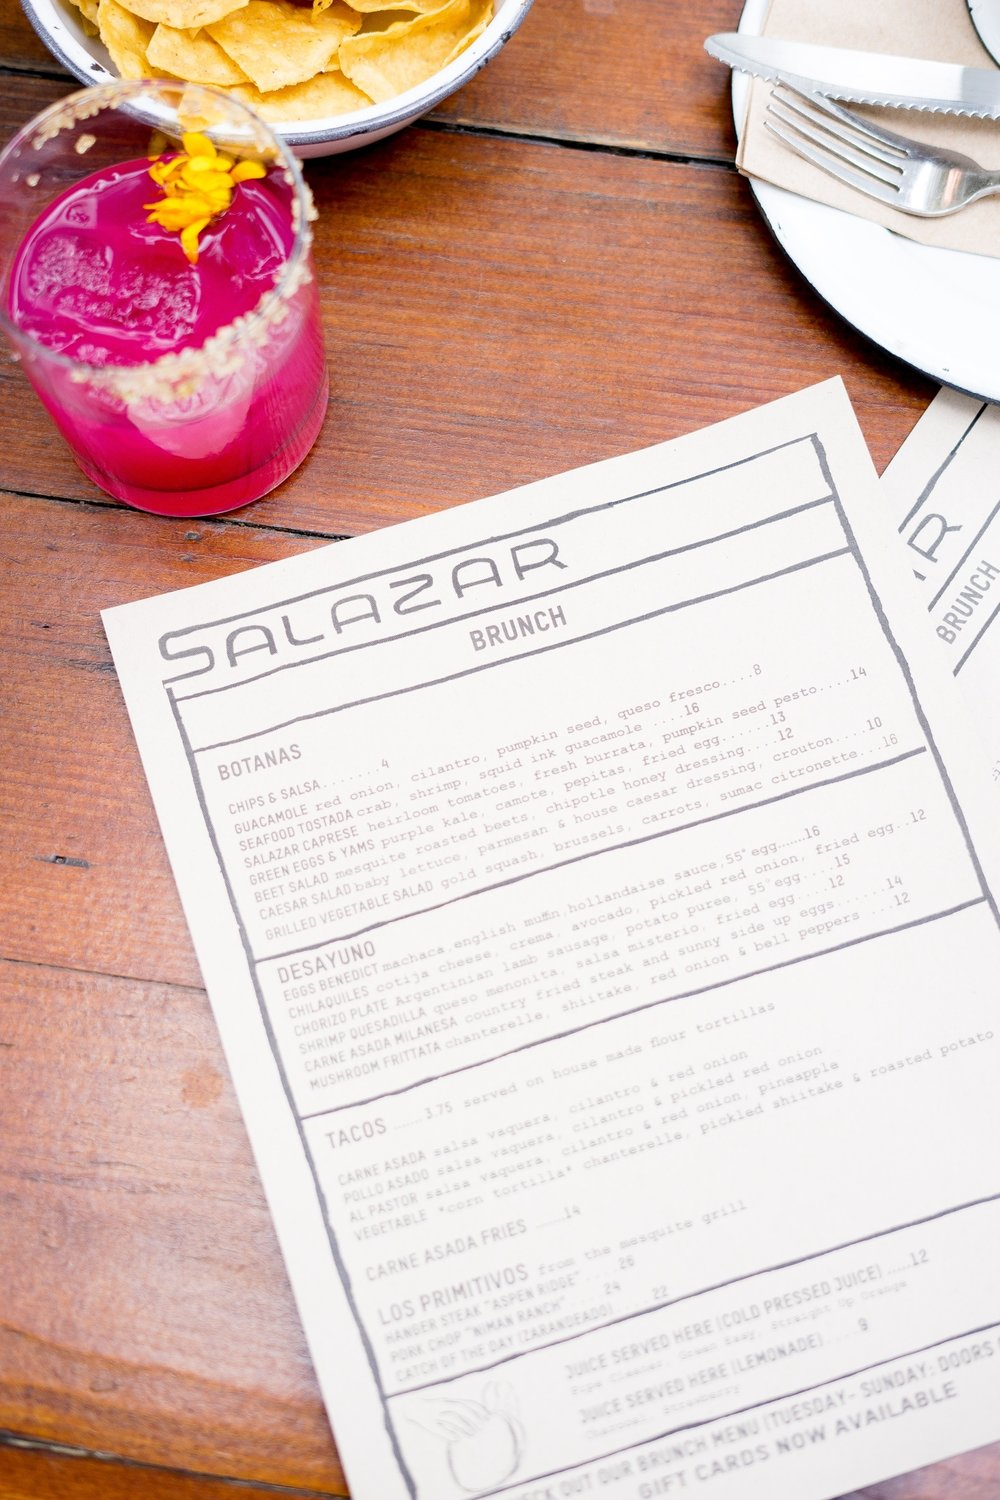 Brunch Menu at Salazar, Frogtown, Los Angeles, CA